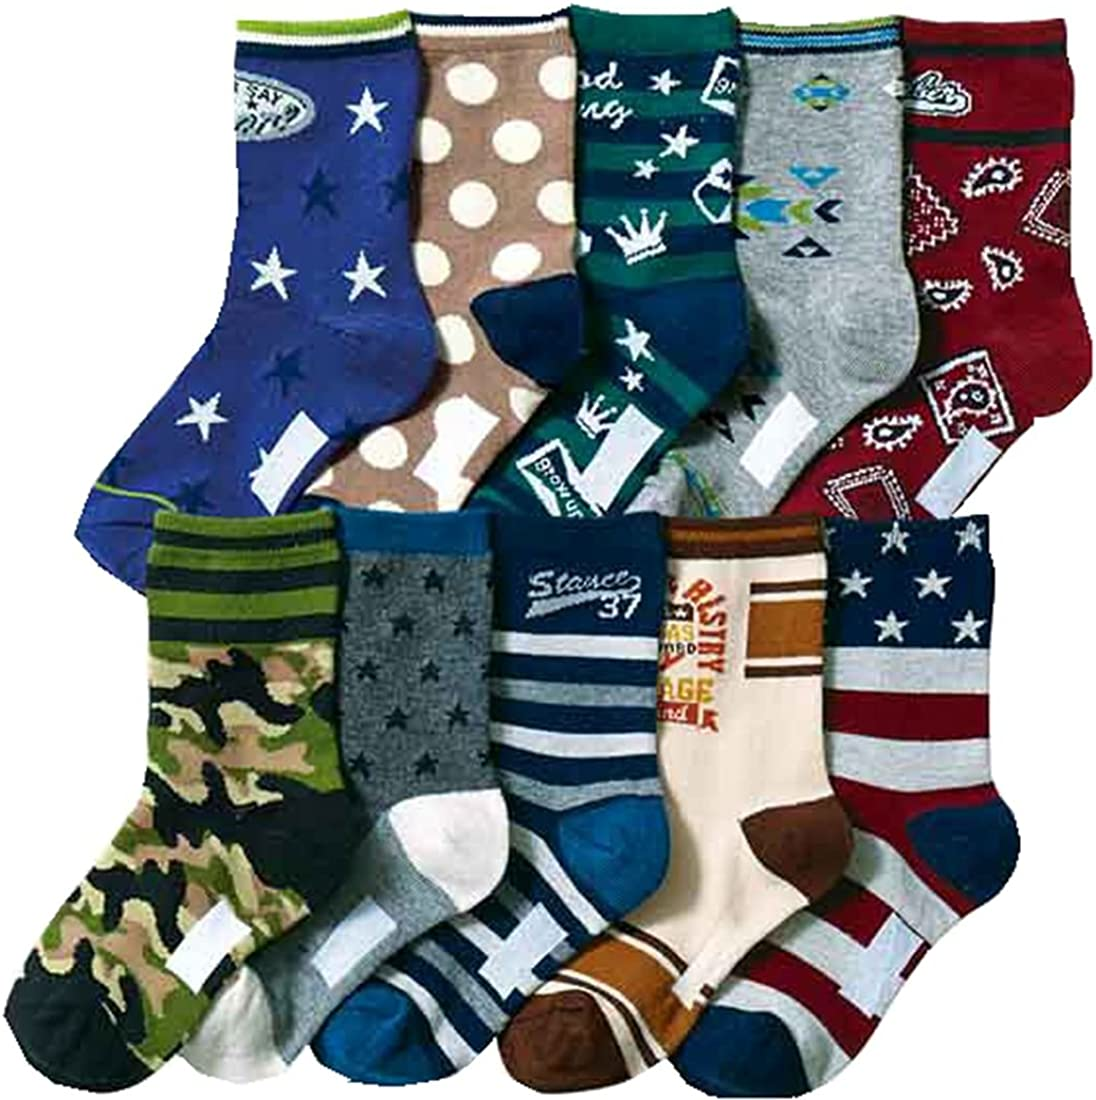 Little Boys Athletic Socks Cotton Kids Different Fancy Socks 10 Pairs